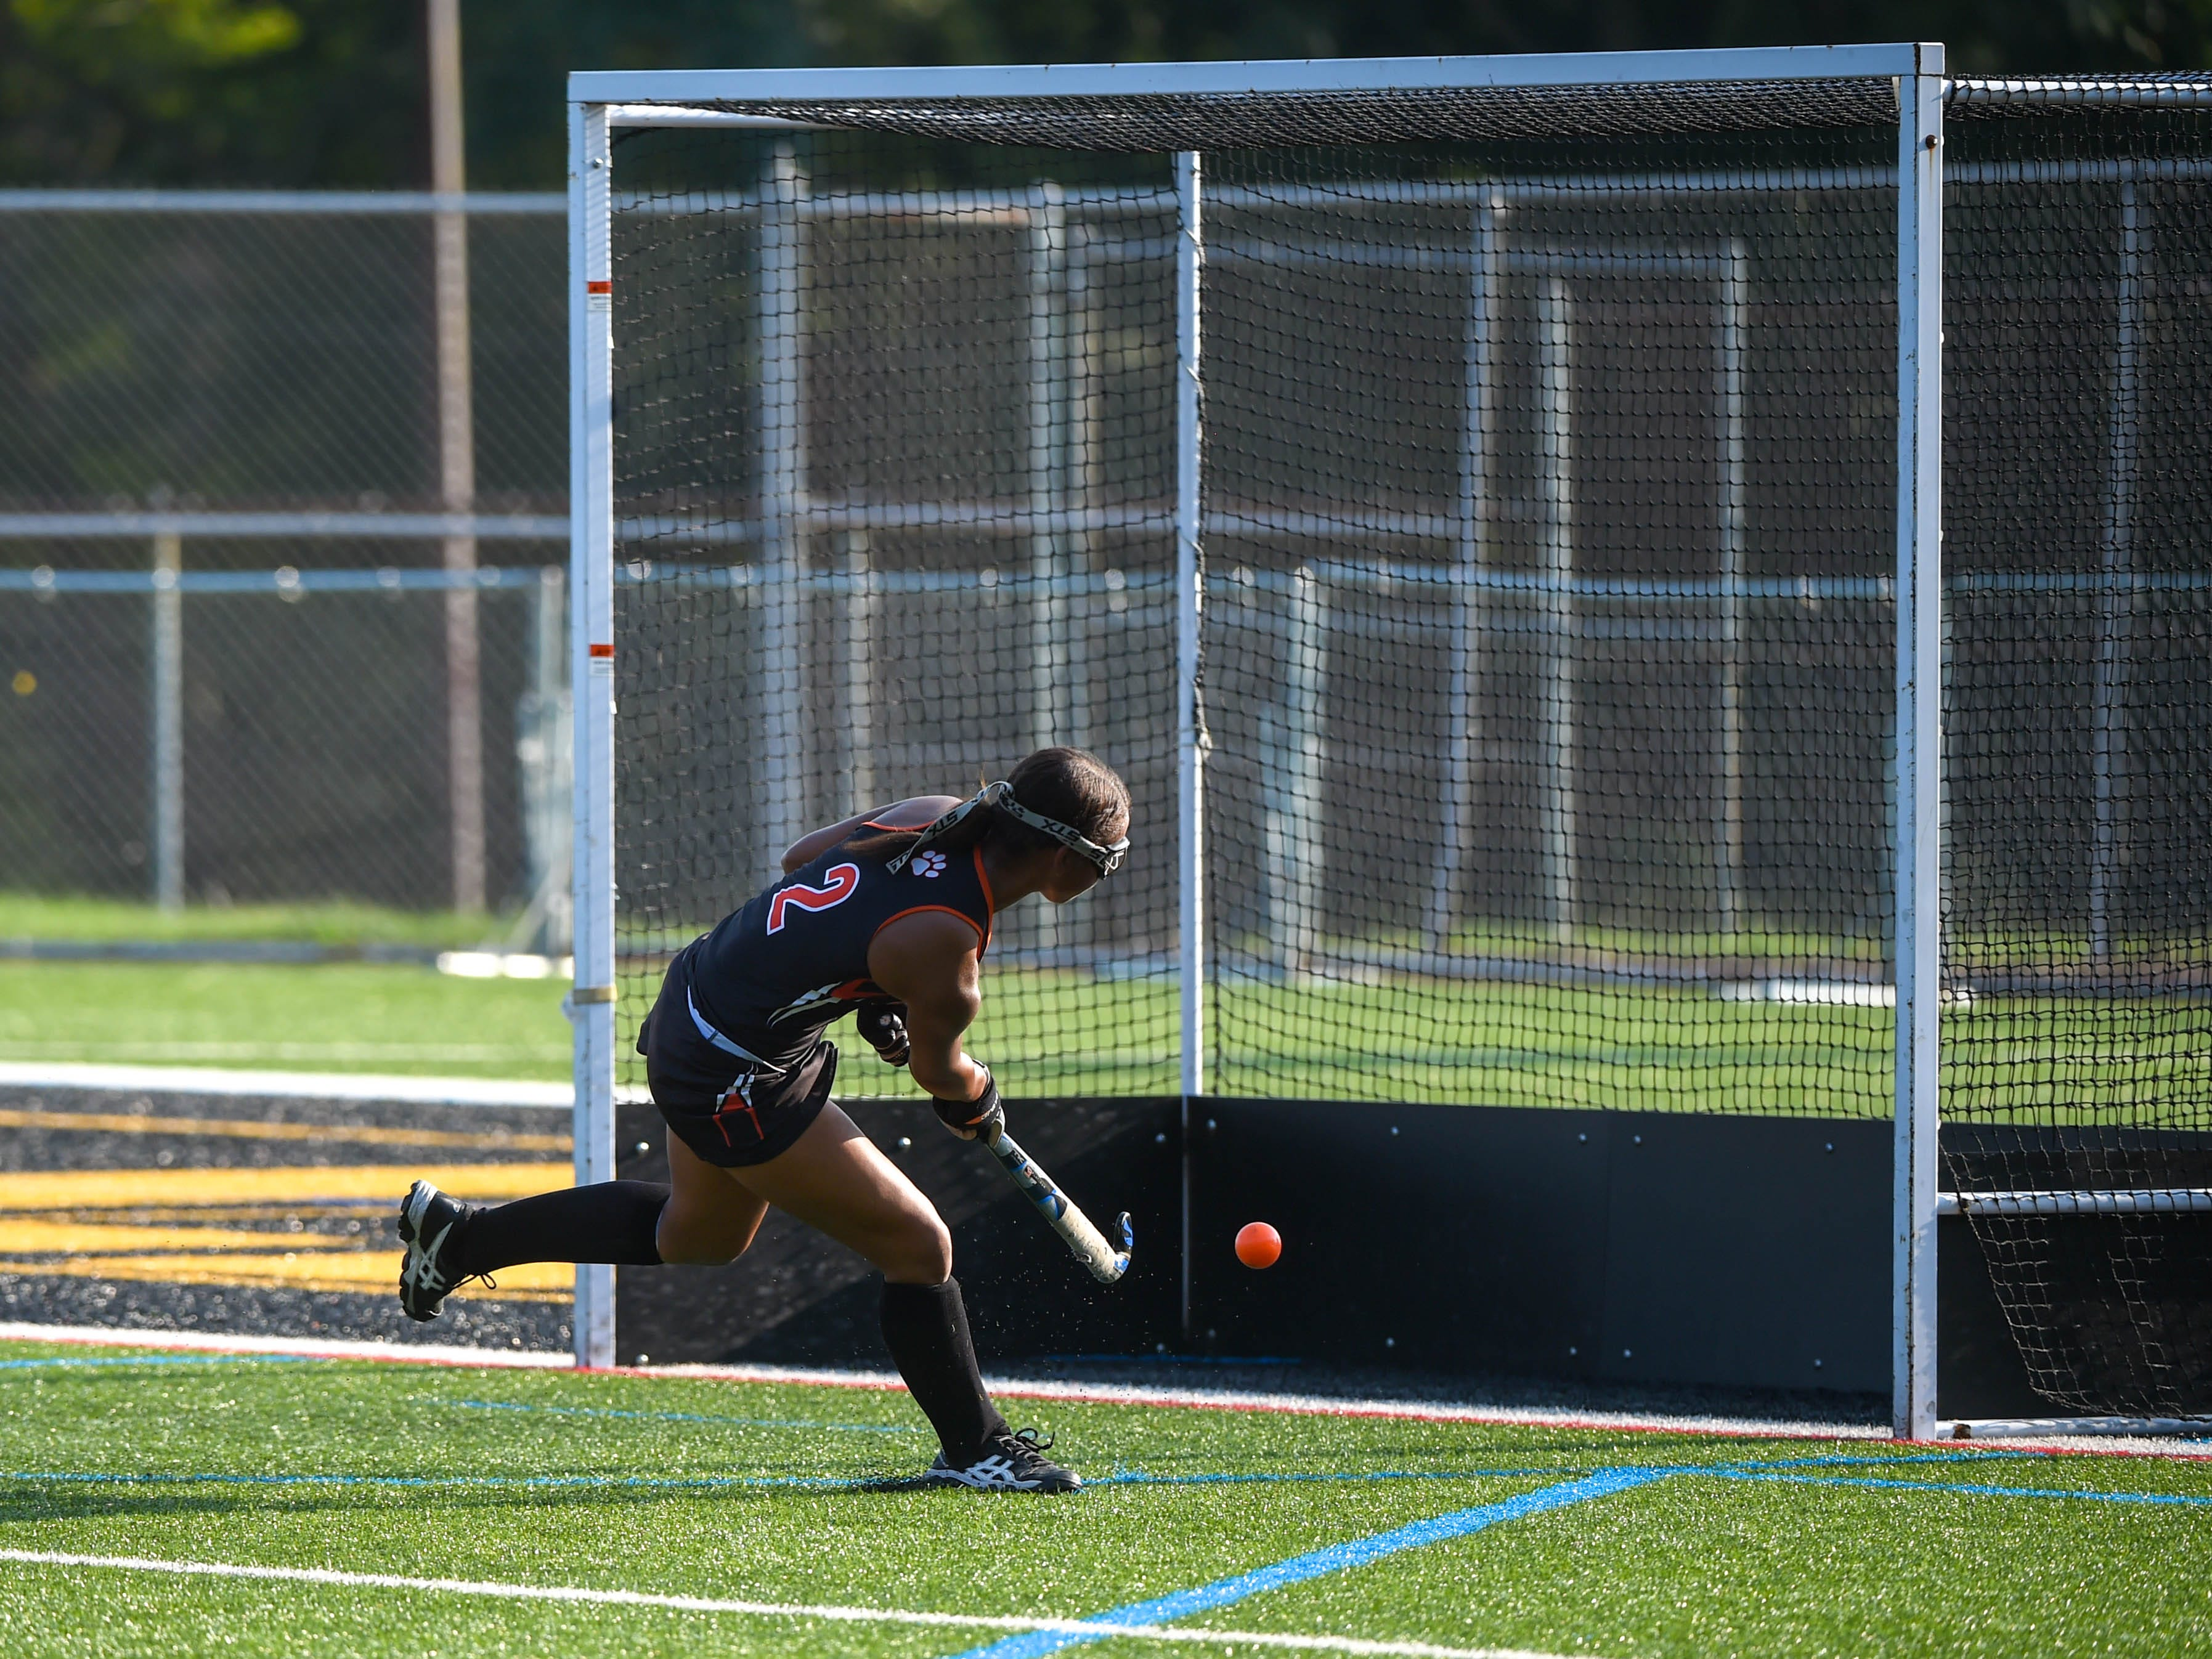 Victoria Whitehead (2) buries the shot, adding to Central York's lead over Red Lion, Wednesday, September 19, 2018.